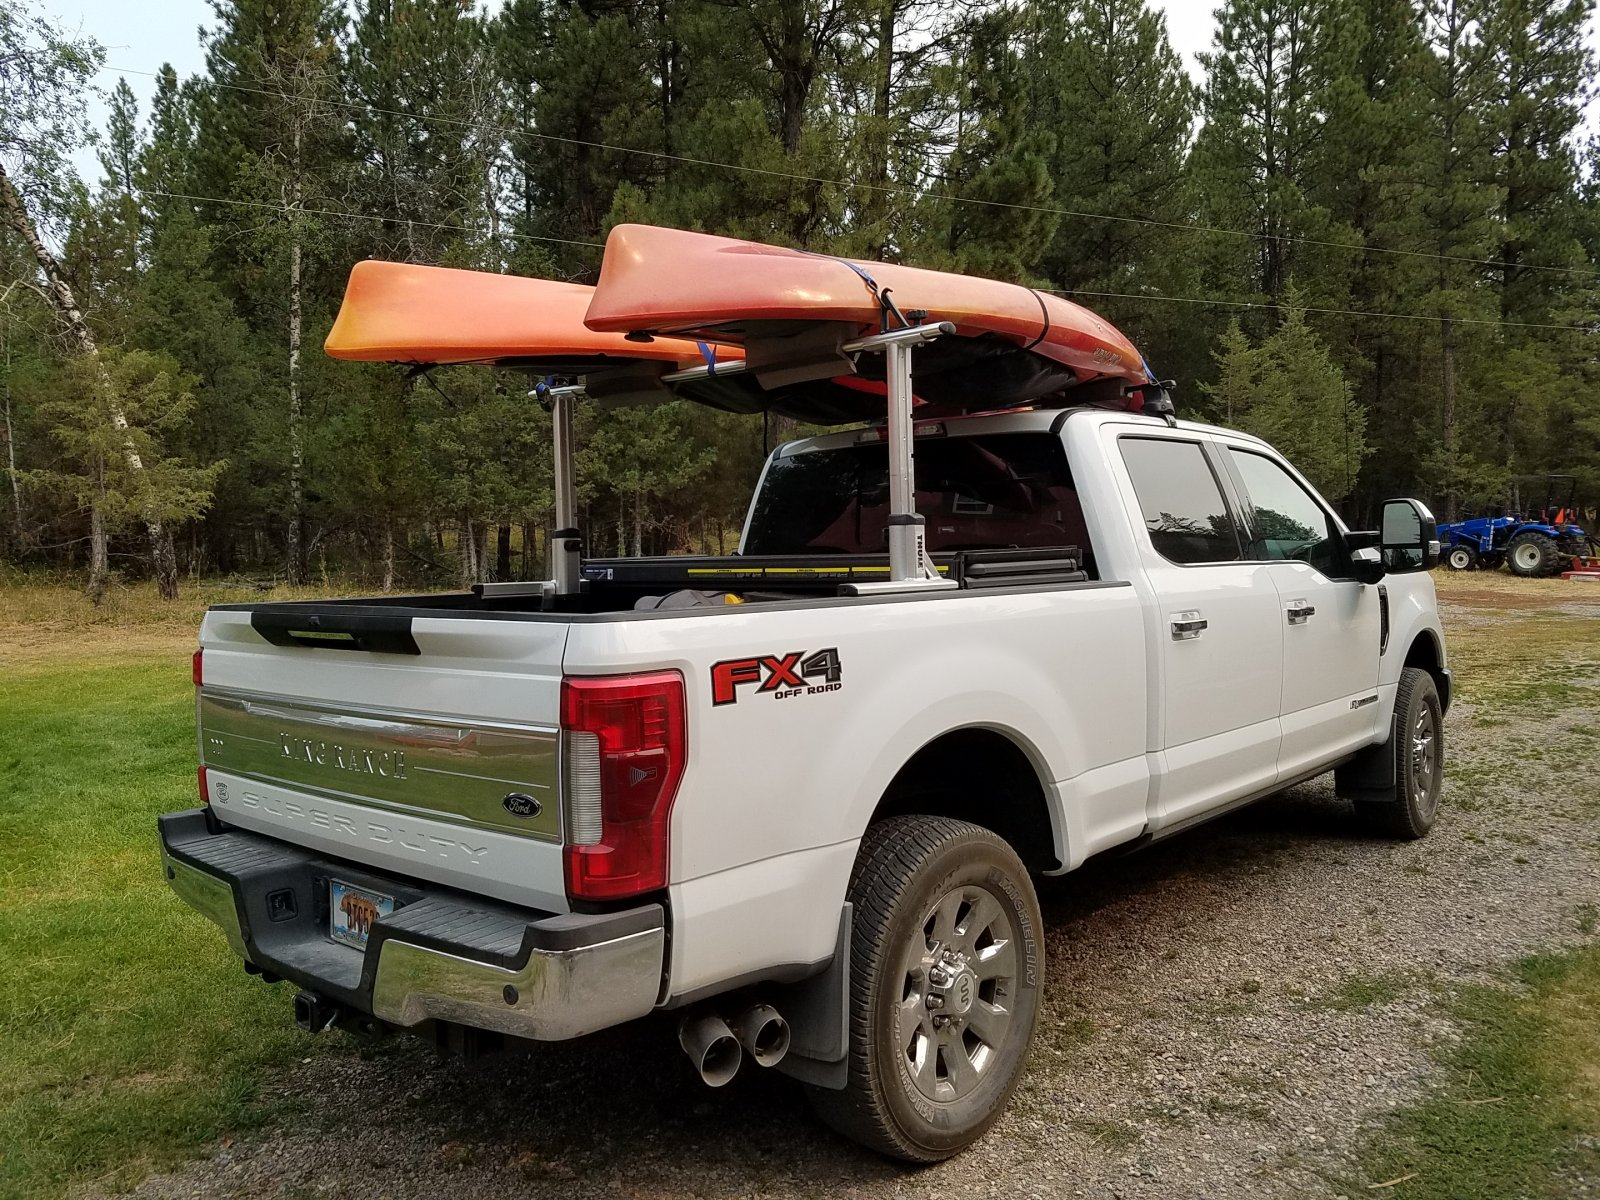 Click image for larger version  Name:F250 w kayaks rear view.jpg Views:45 Size:562.0 KB ID:294000